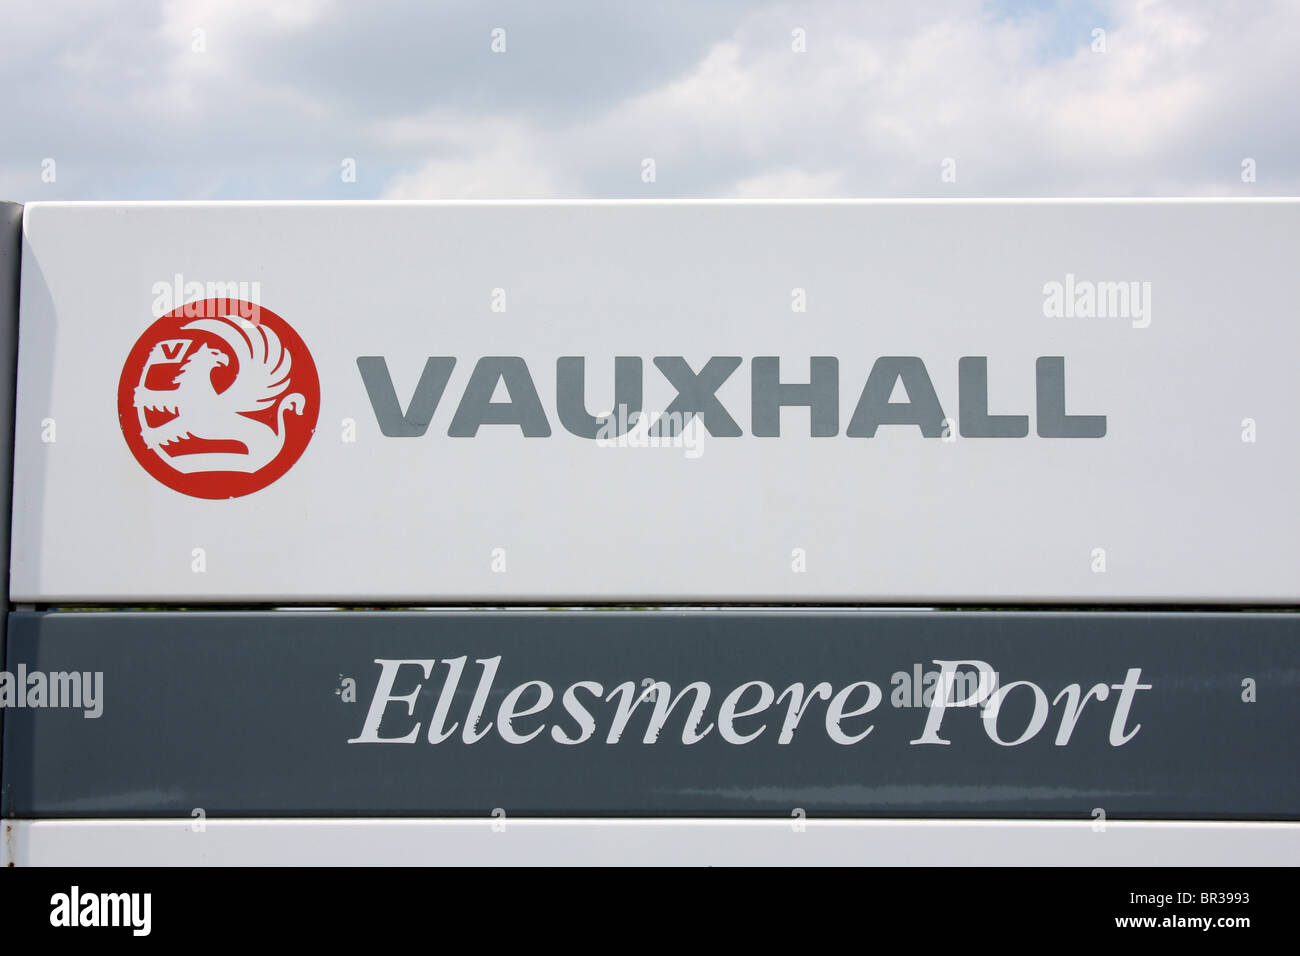 Vauxhall Motors signeage at its UK factory in Ellesmere Port - Stock Image